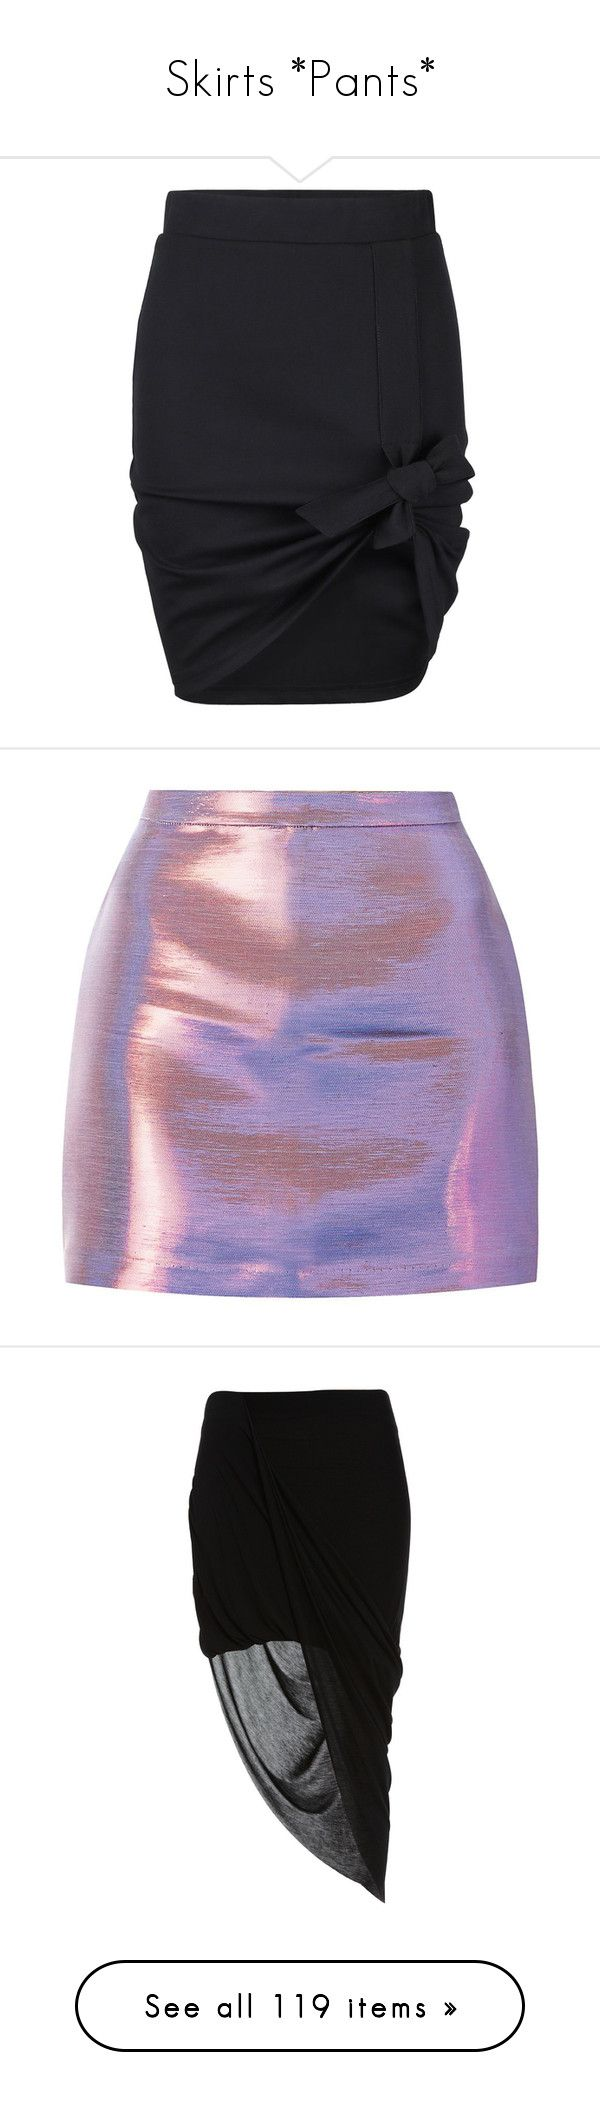 """Skirts *Pants*"" by queenswag245 ❤ liked on Polyvore featuring skirts, ribbon skirt, sexy pencil skirt, sexy skirt, pencil skirt, knee length pencil skirt, mini skirts, bottoms, saias and faldas"